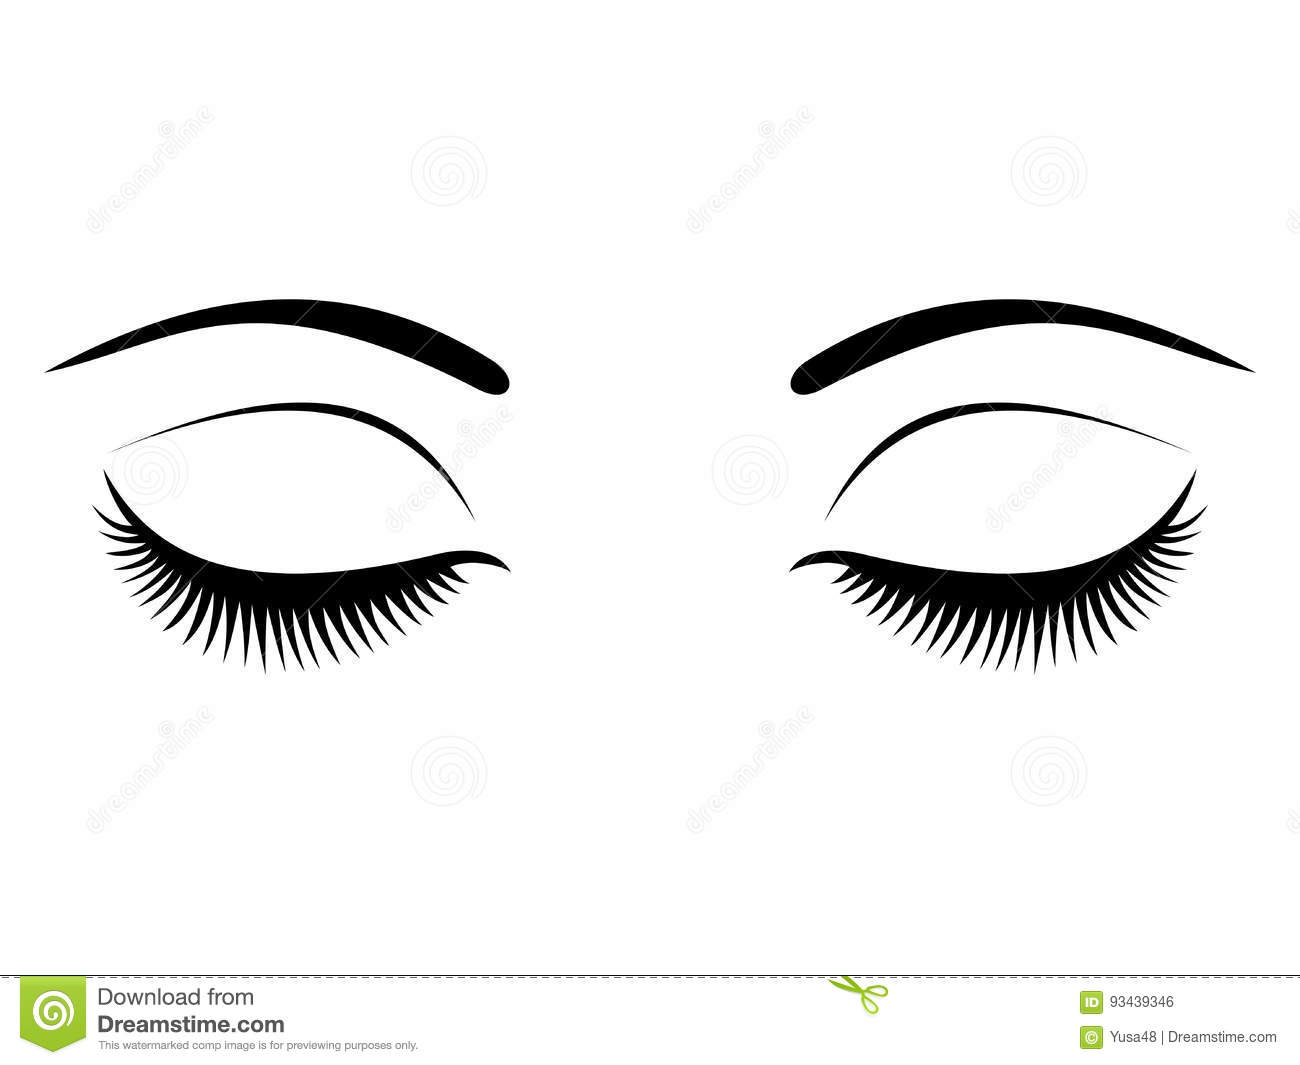 ea5f96746f7 Closed eyes with black eyelashes on a white background. Download preview